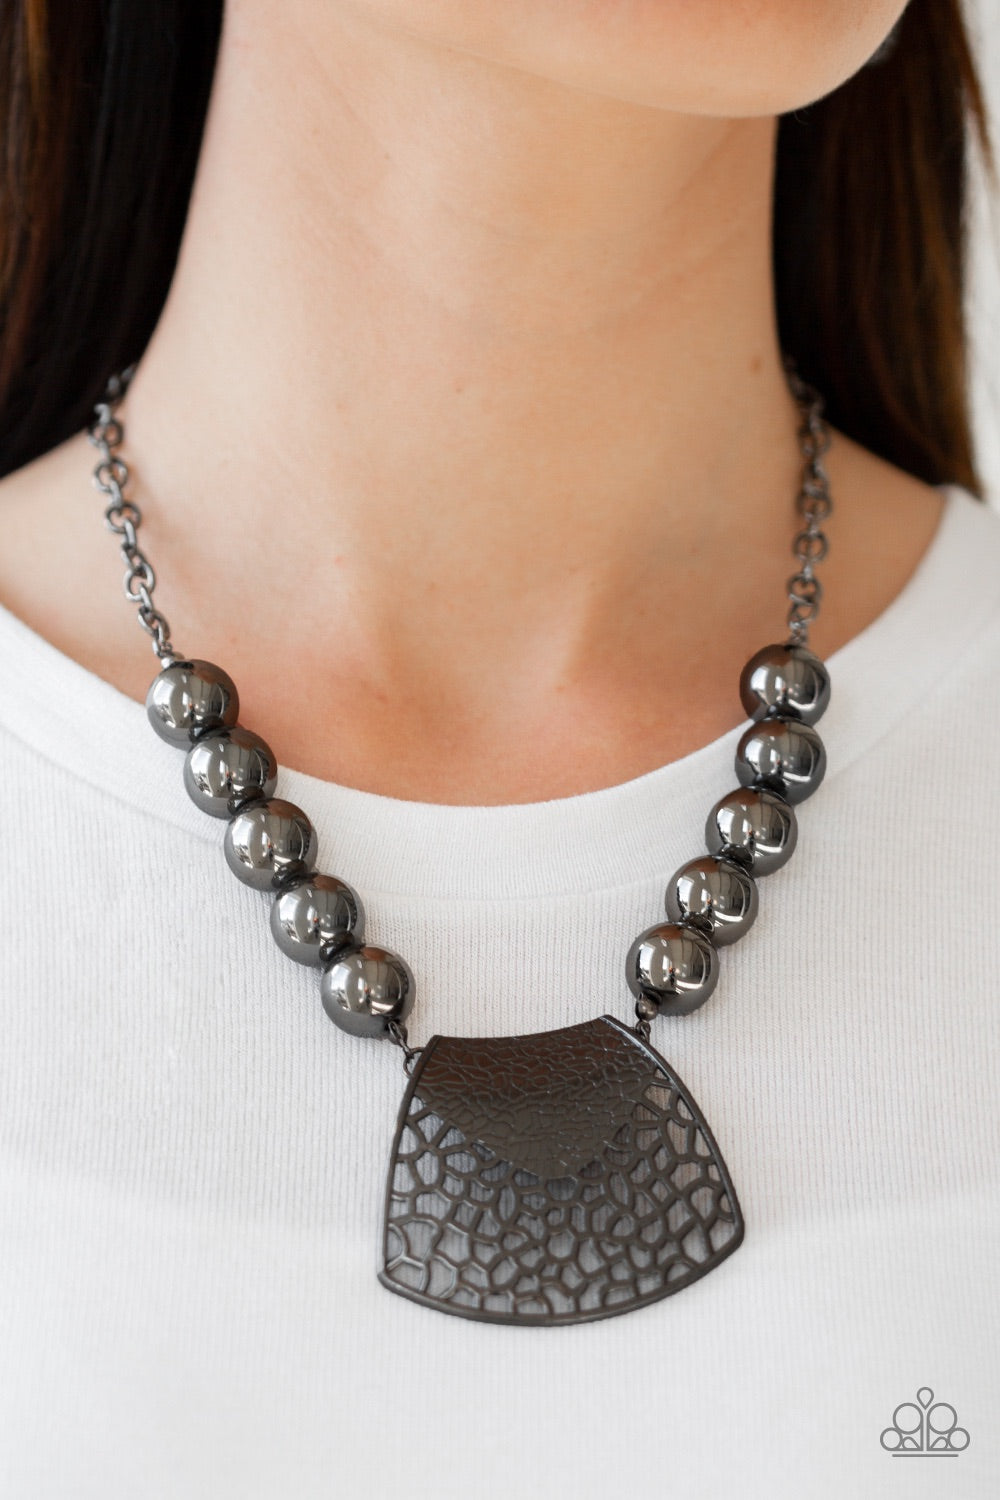 Paparazzi Jewelry Necklace Large and In Charge - Black